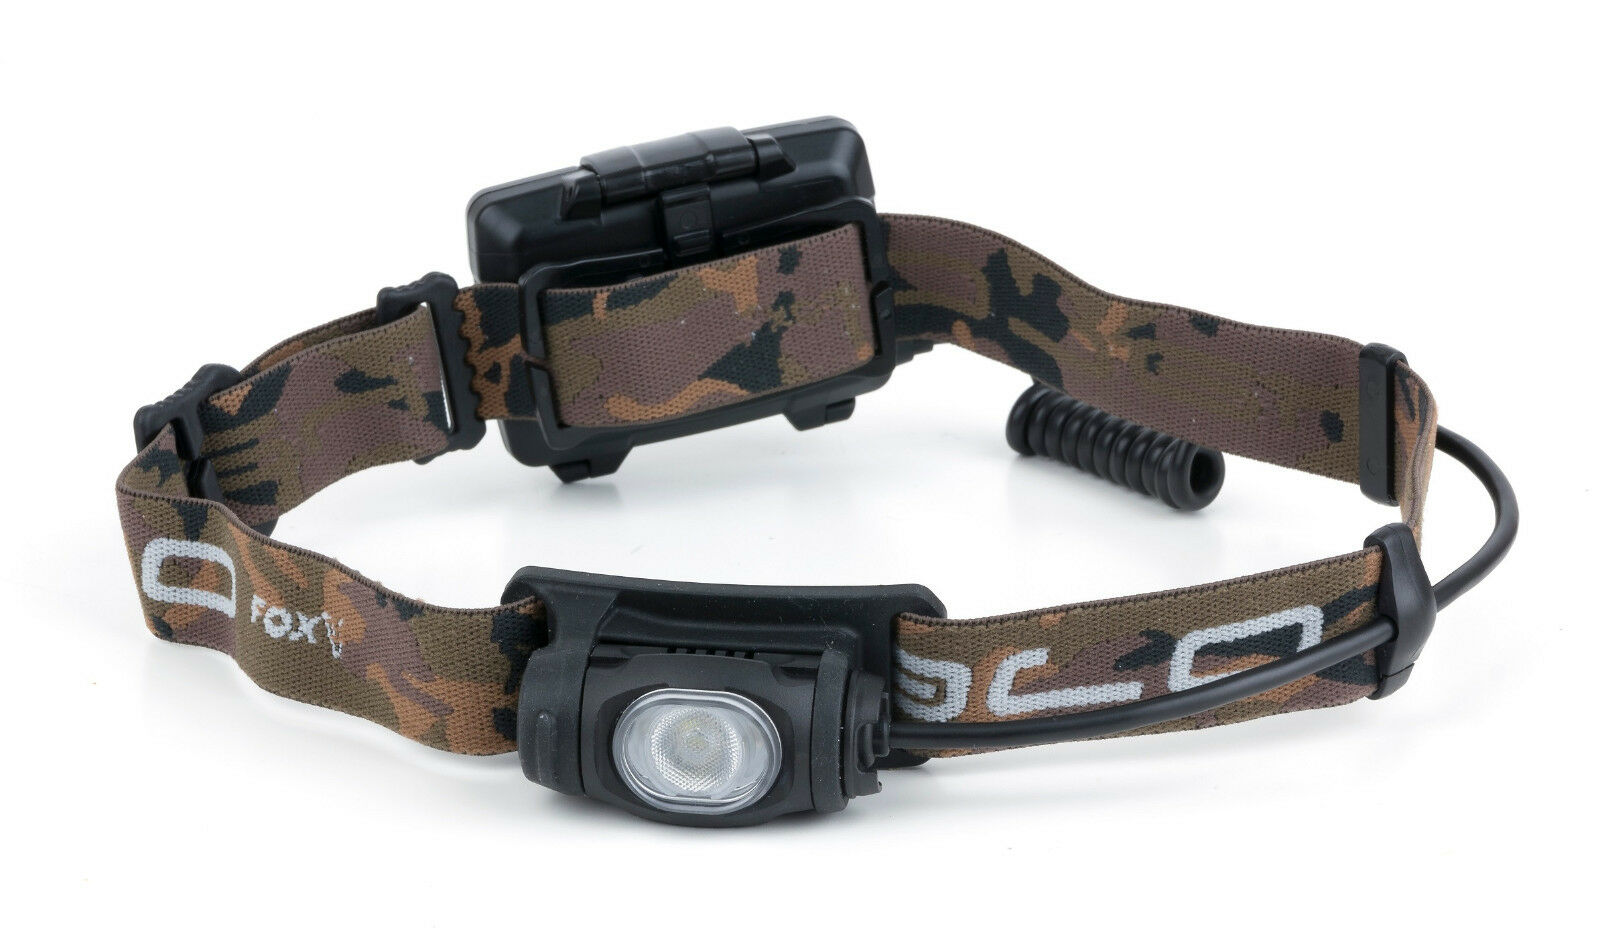 Fox Halo AL320 Headtorch CEI164 Kopflampe Lampe Lamp Angellampe